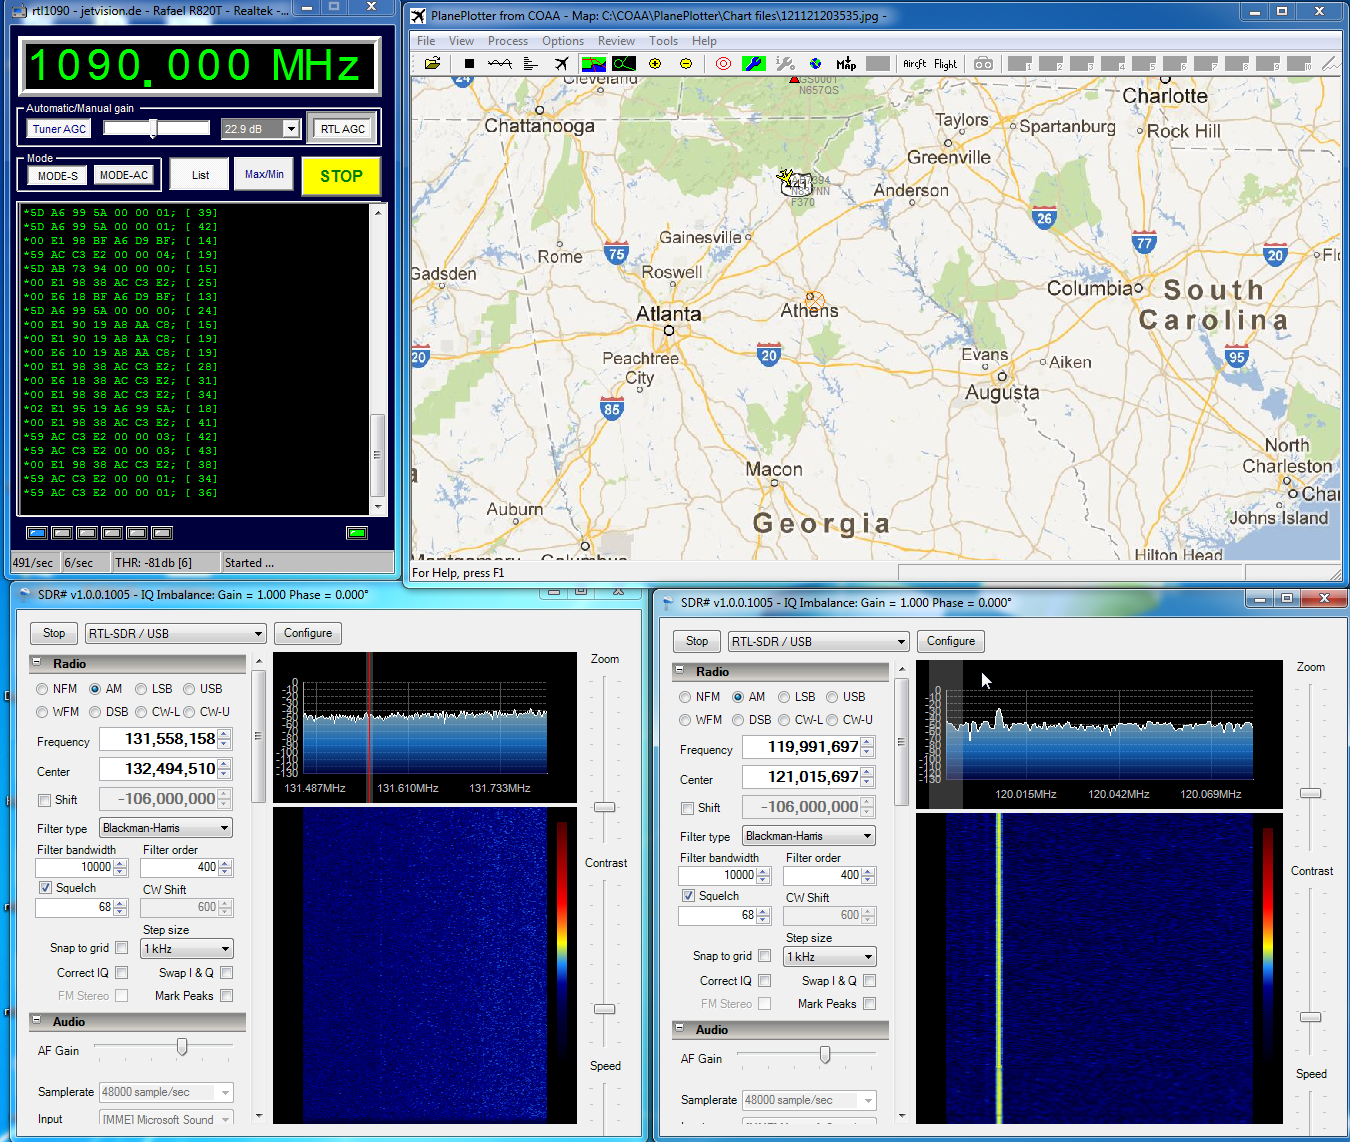 Adding ADS-B, ACARS, and ATC Audio to PlanePlotter Using Multiple